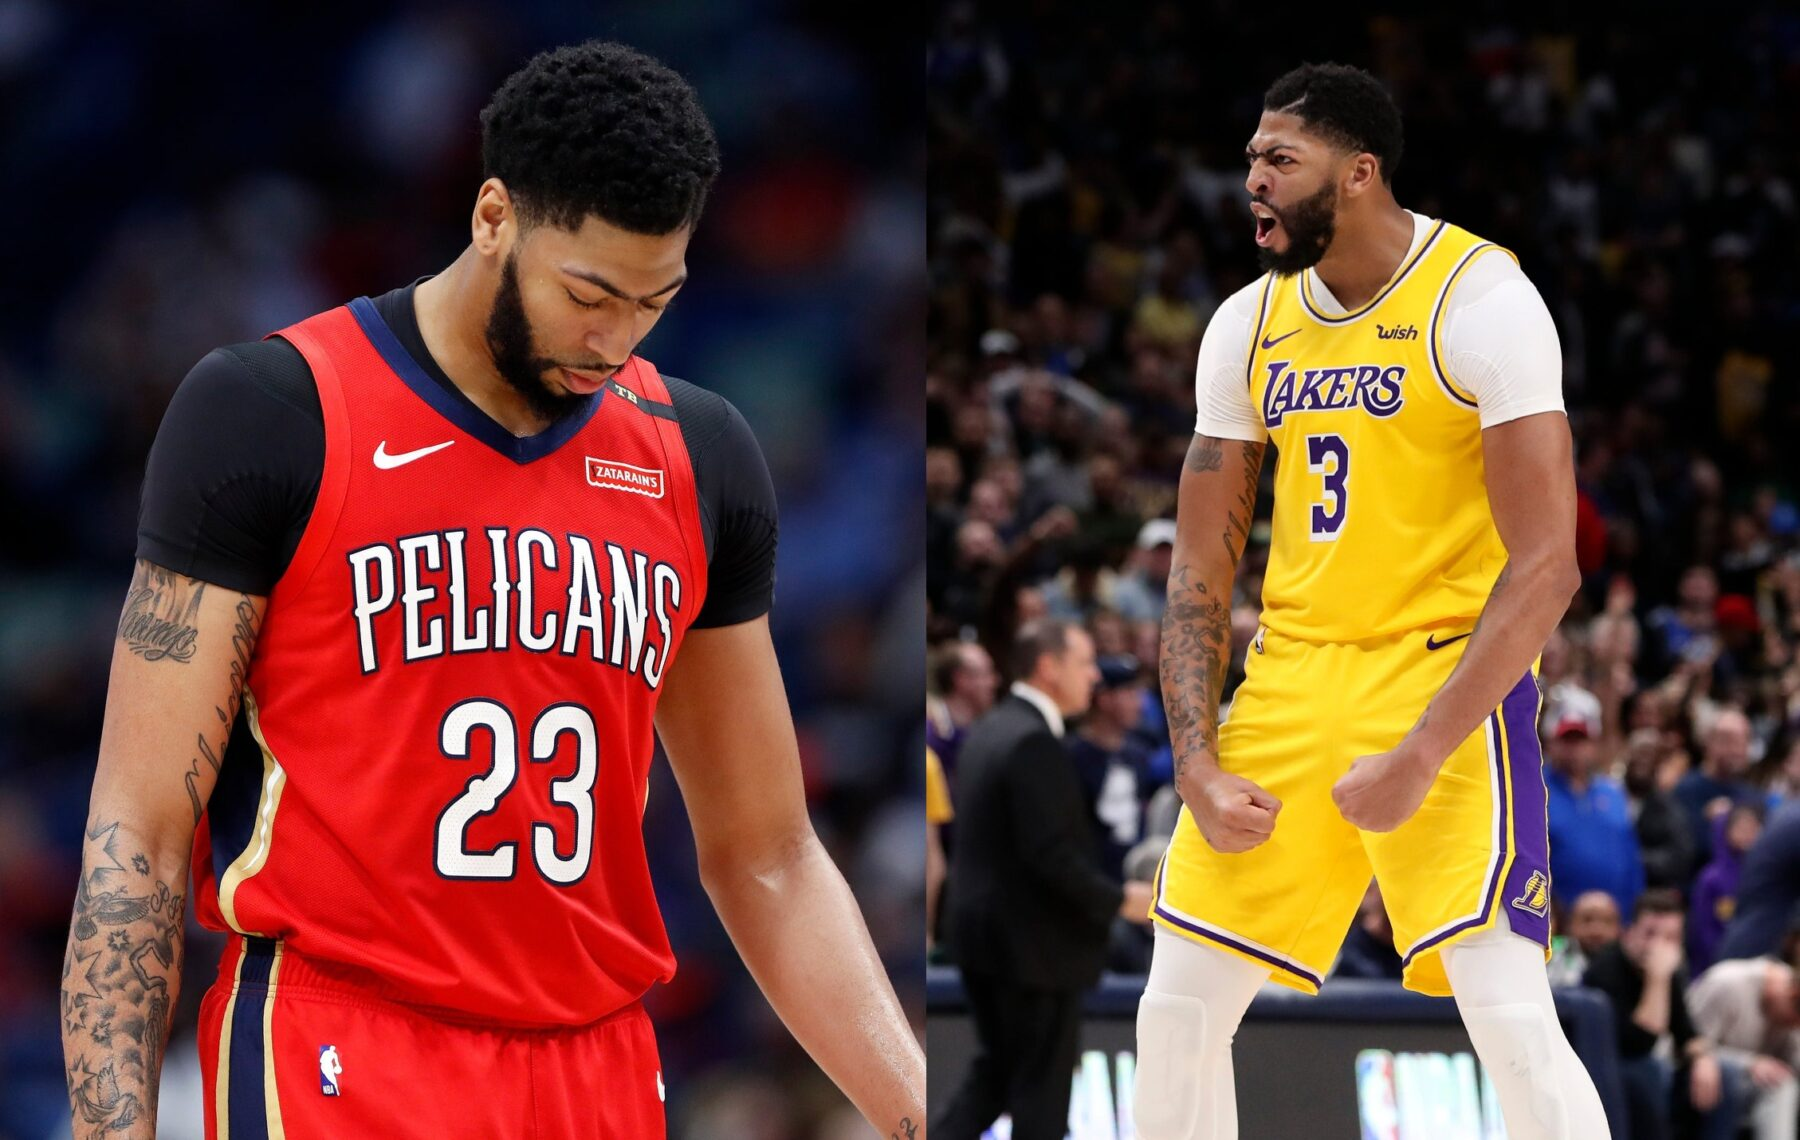 Pelicans Anthony Davis and Lakers Anthony Davis